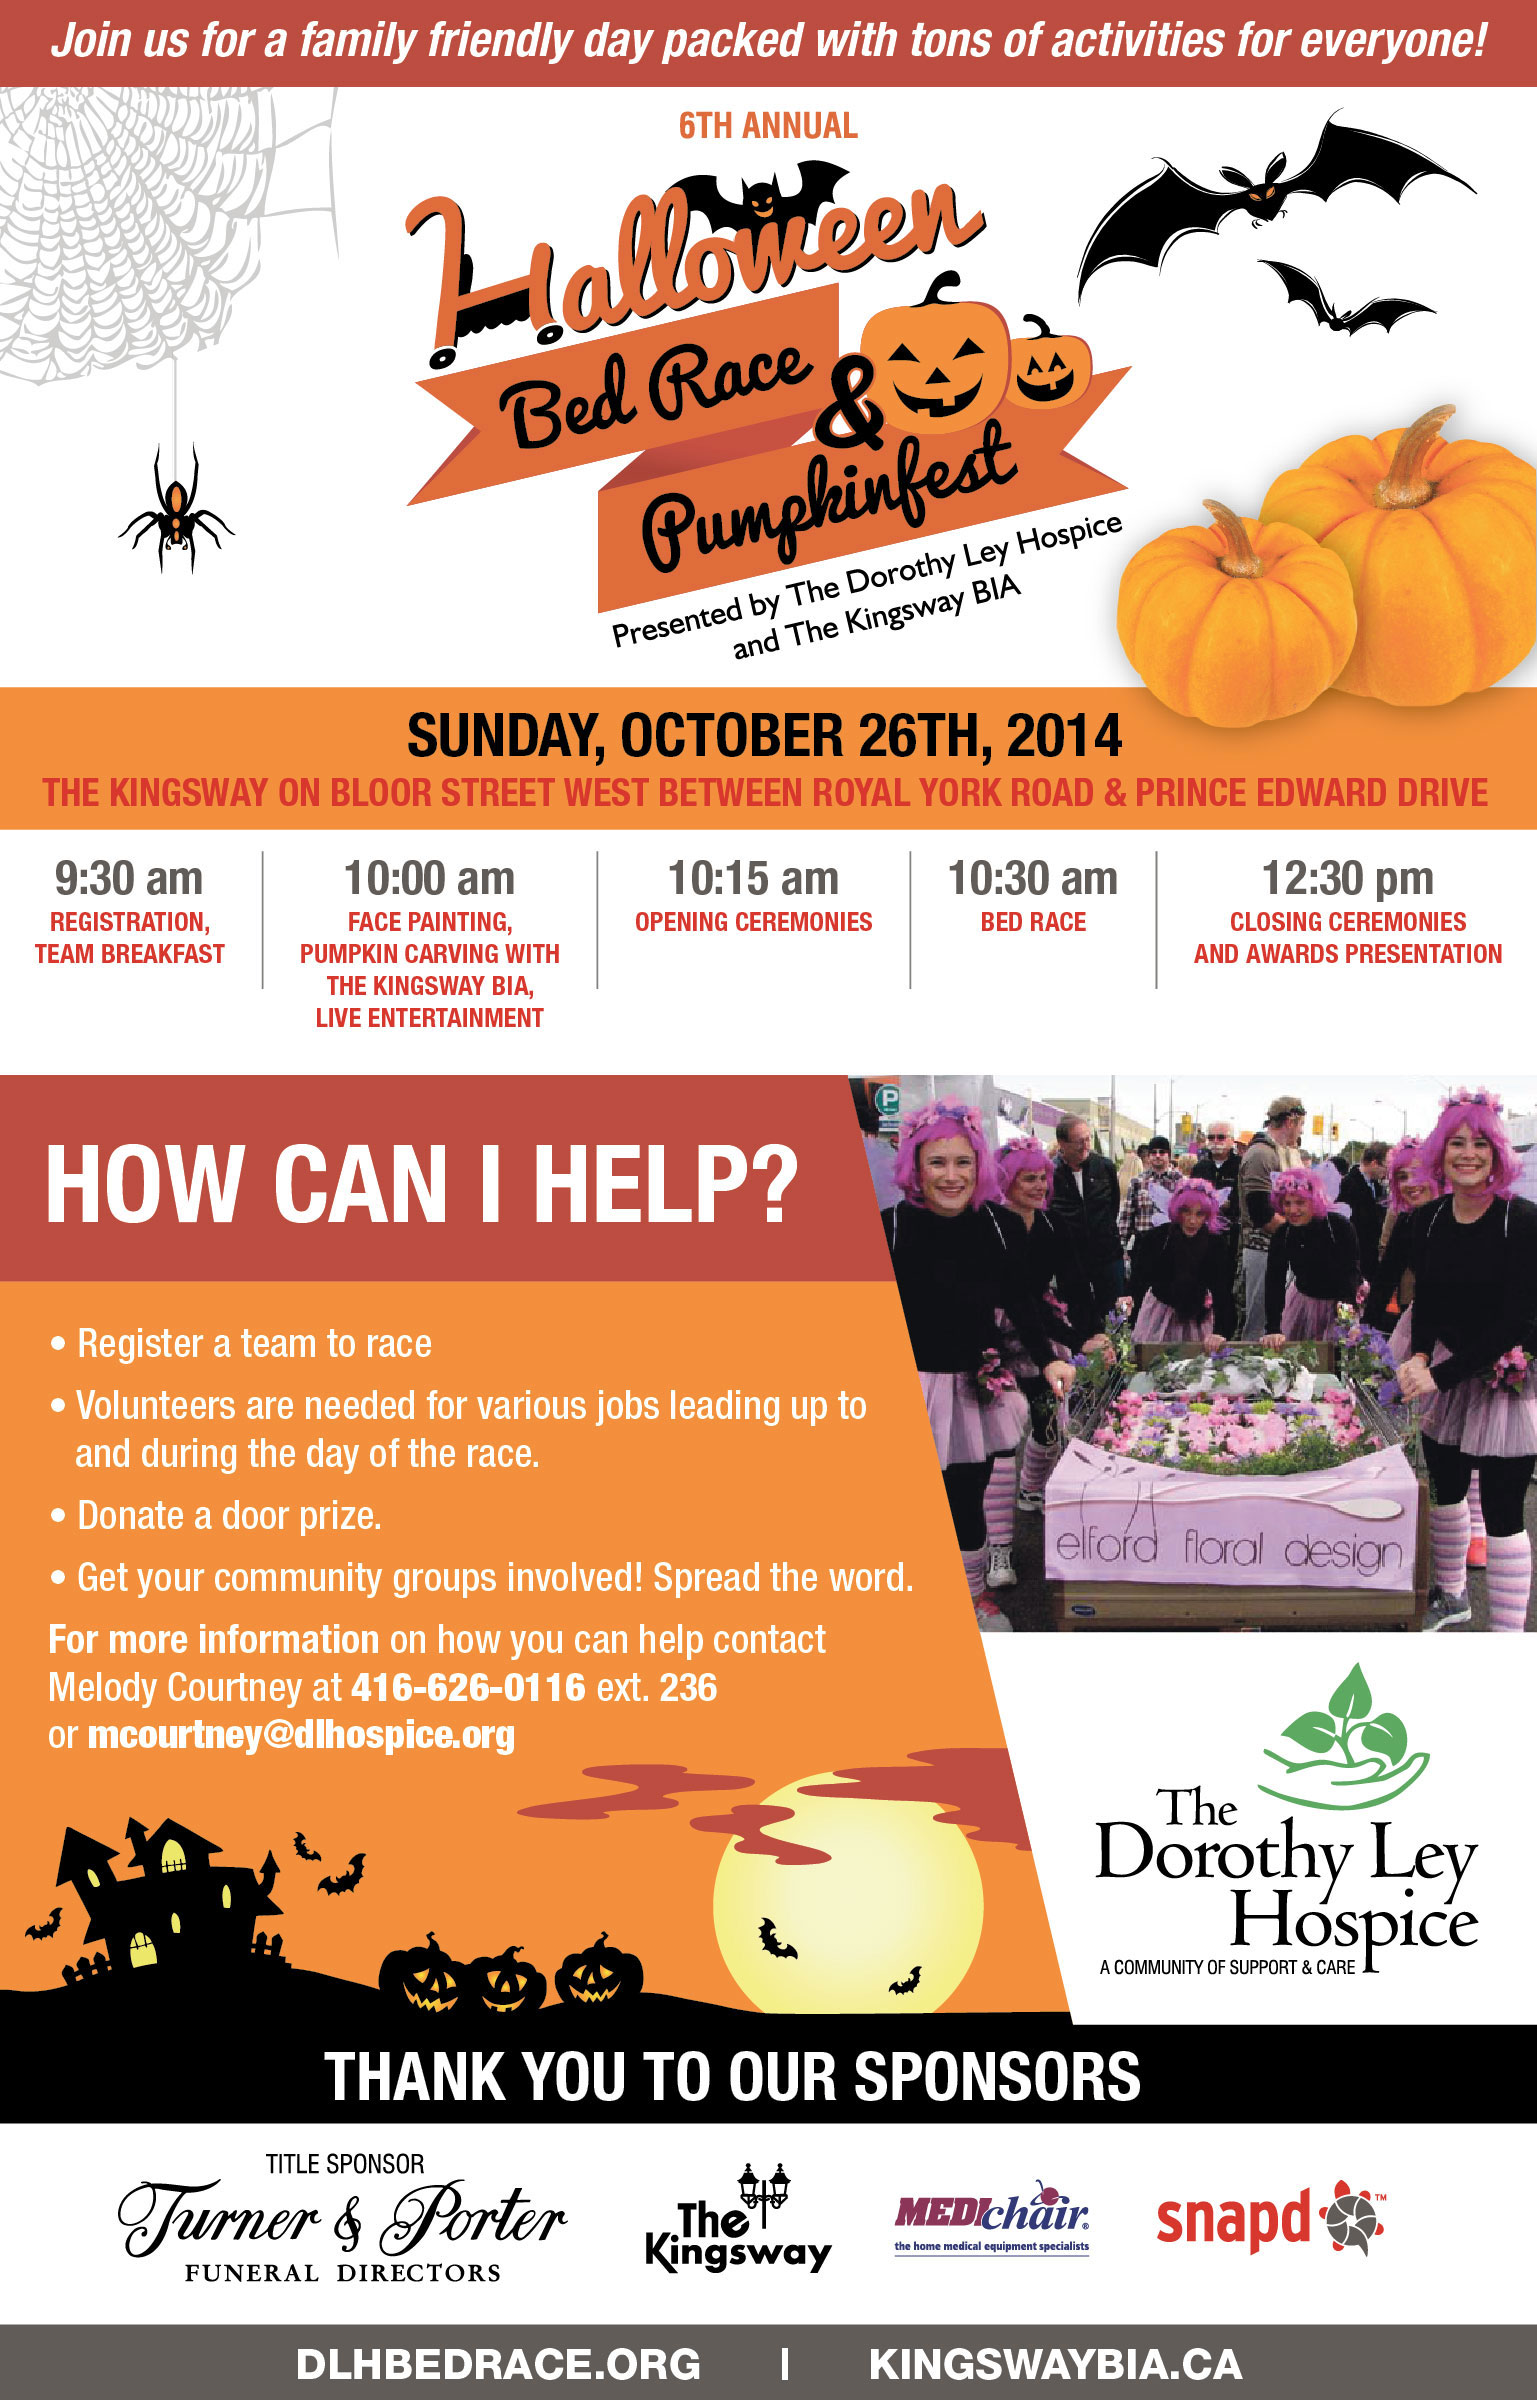 Poster for the Halloween Bed Race and Pumpkinfest in the Kingsway event. Photo via kingswaybia.ca.